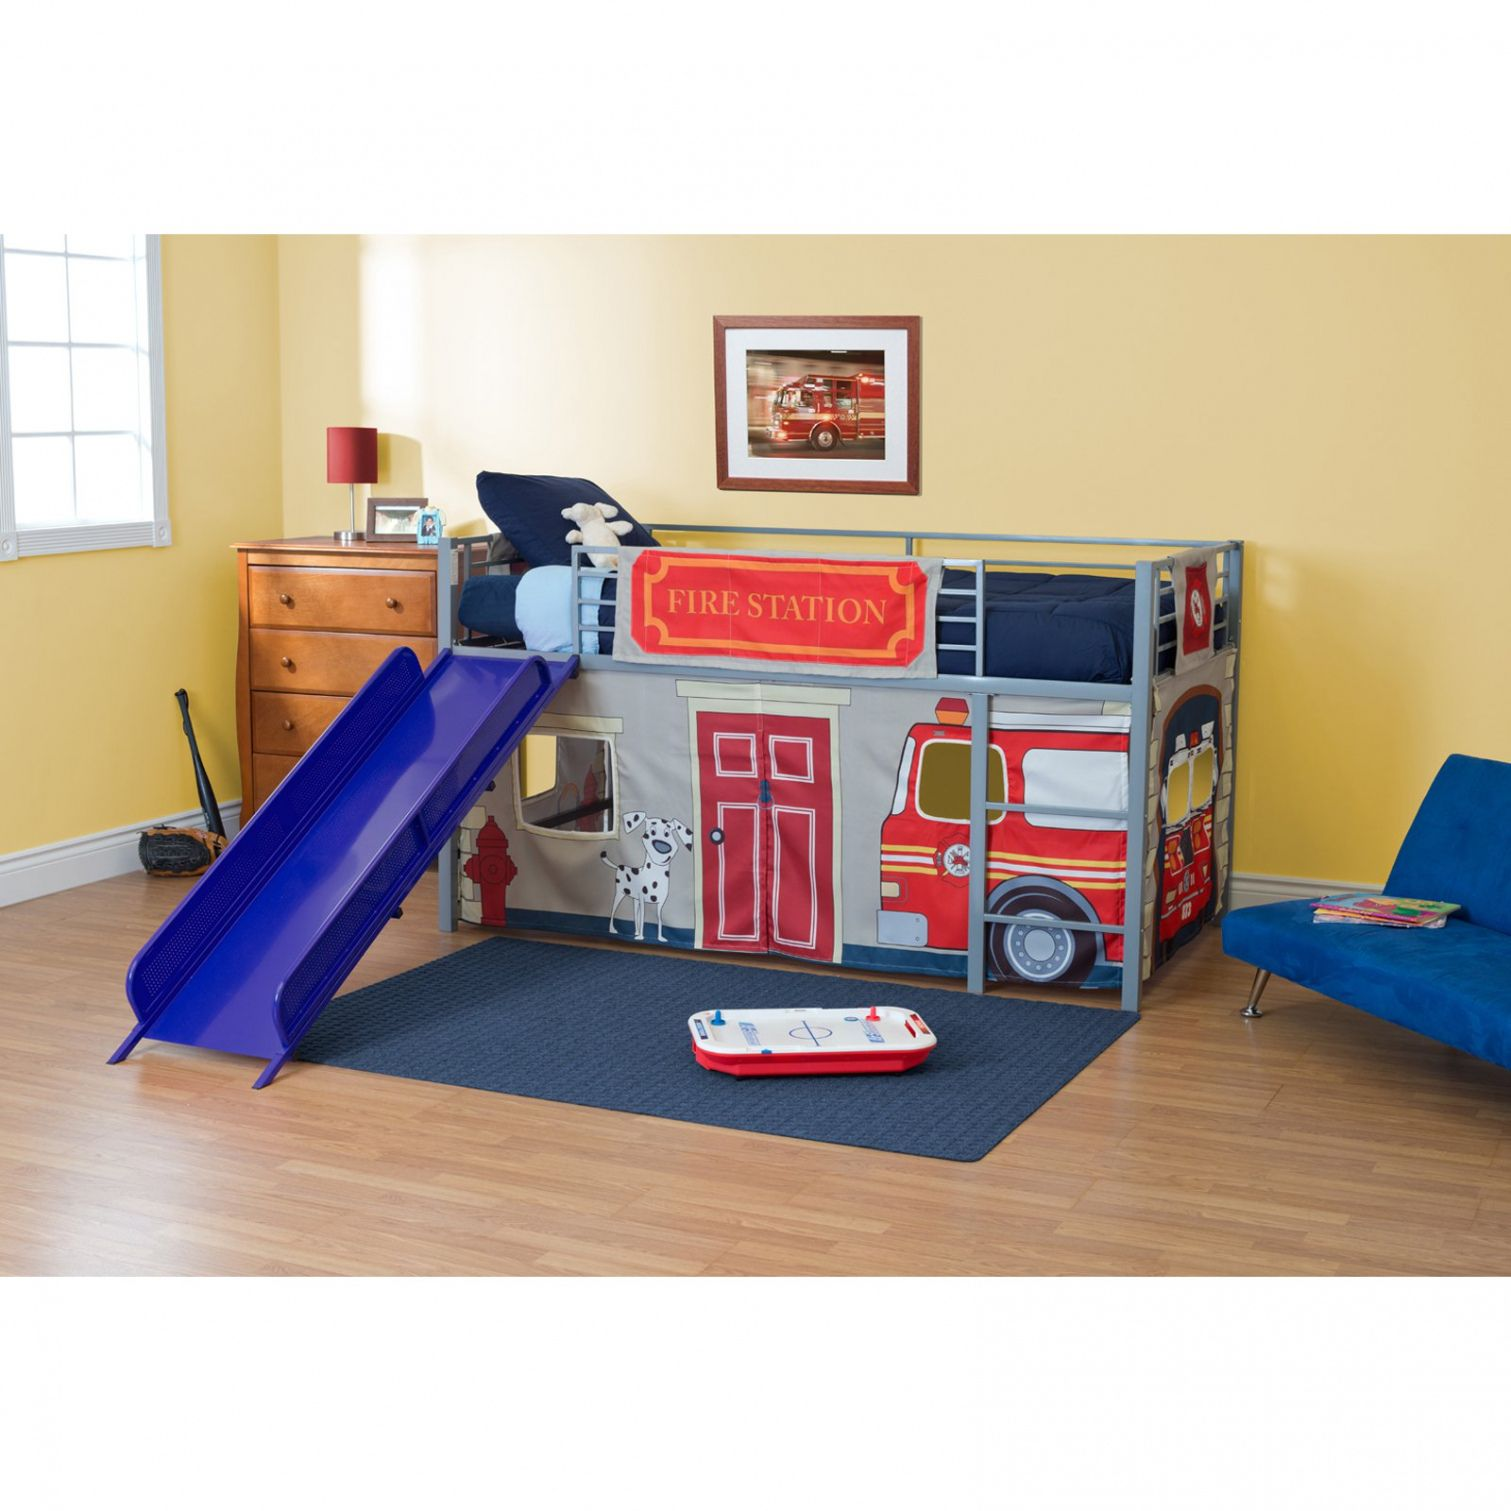 Kids Bunk Bed Slide Lowes Paint Colors Interior Check more at